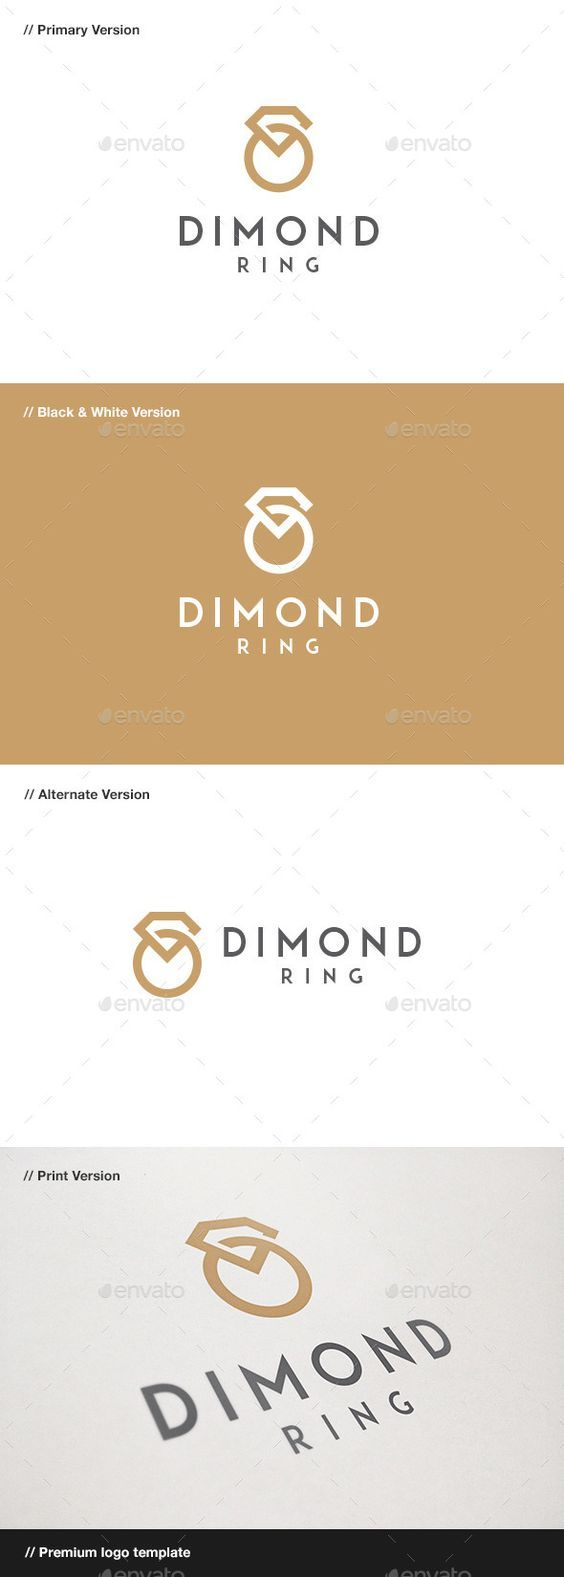 creative converted templates diamond market logo dacascas